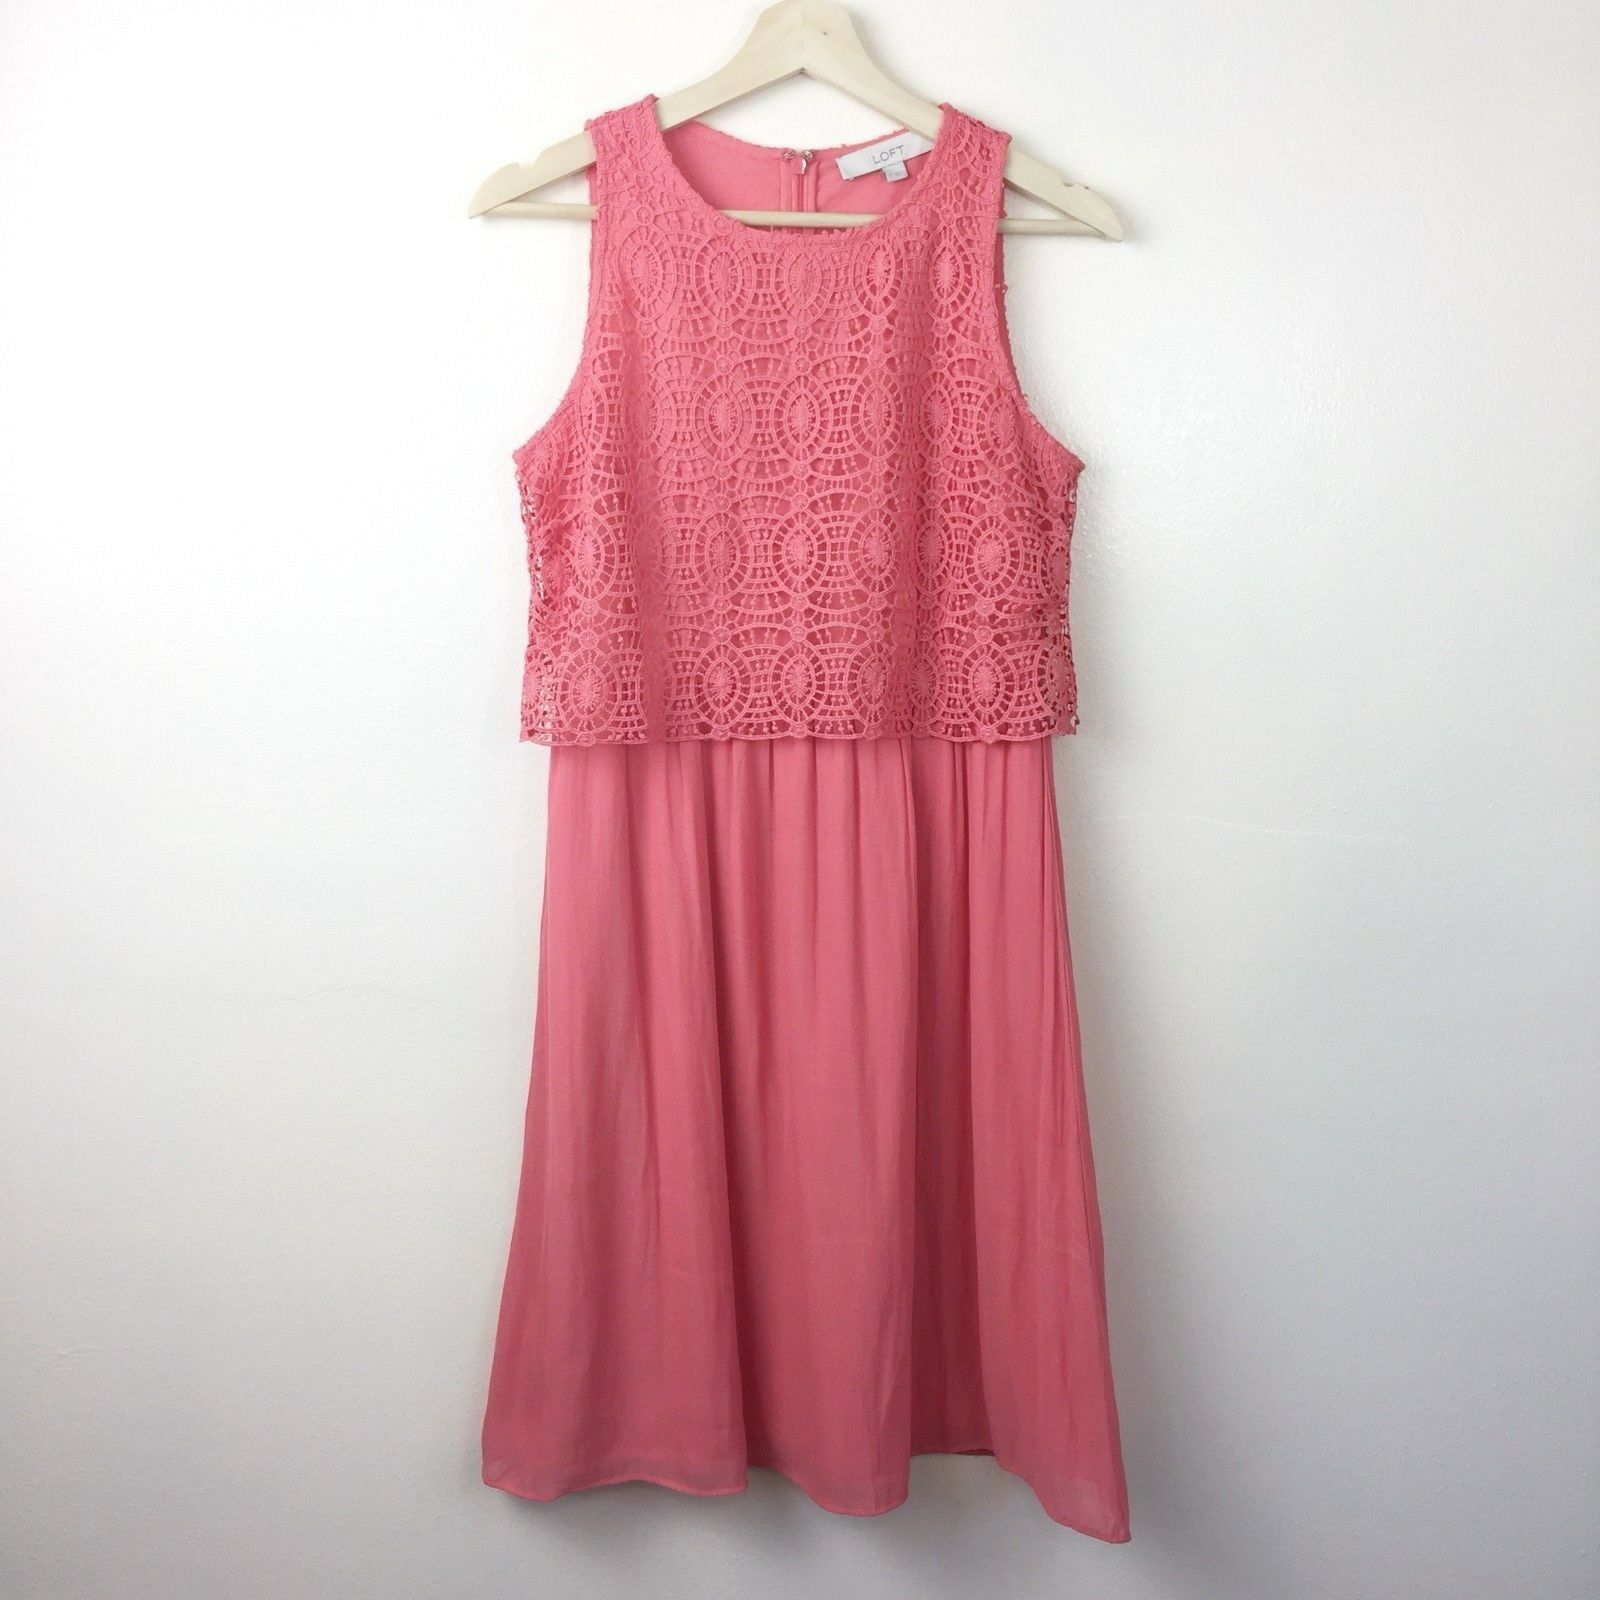 LOFT Circle Lace Bodice Dress Size 2 Coral Pink Layered Look Women's  89.50 NWT